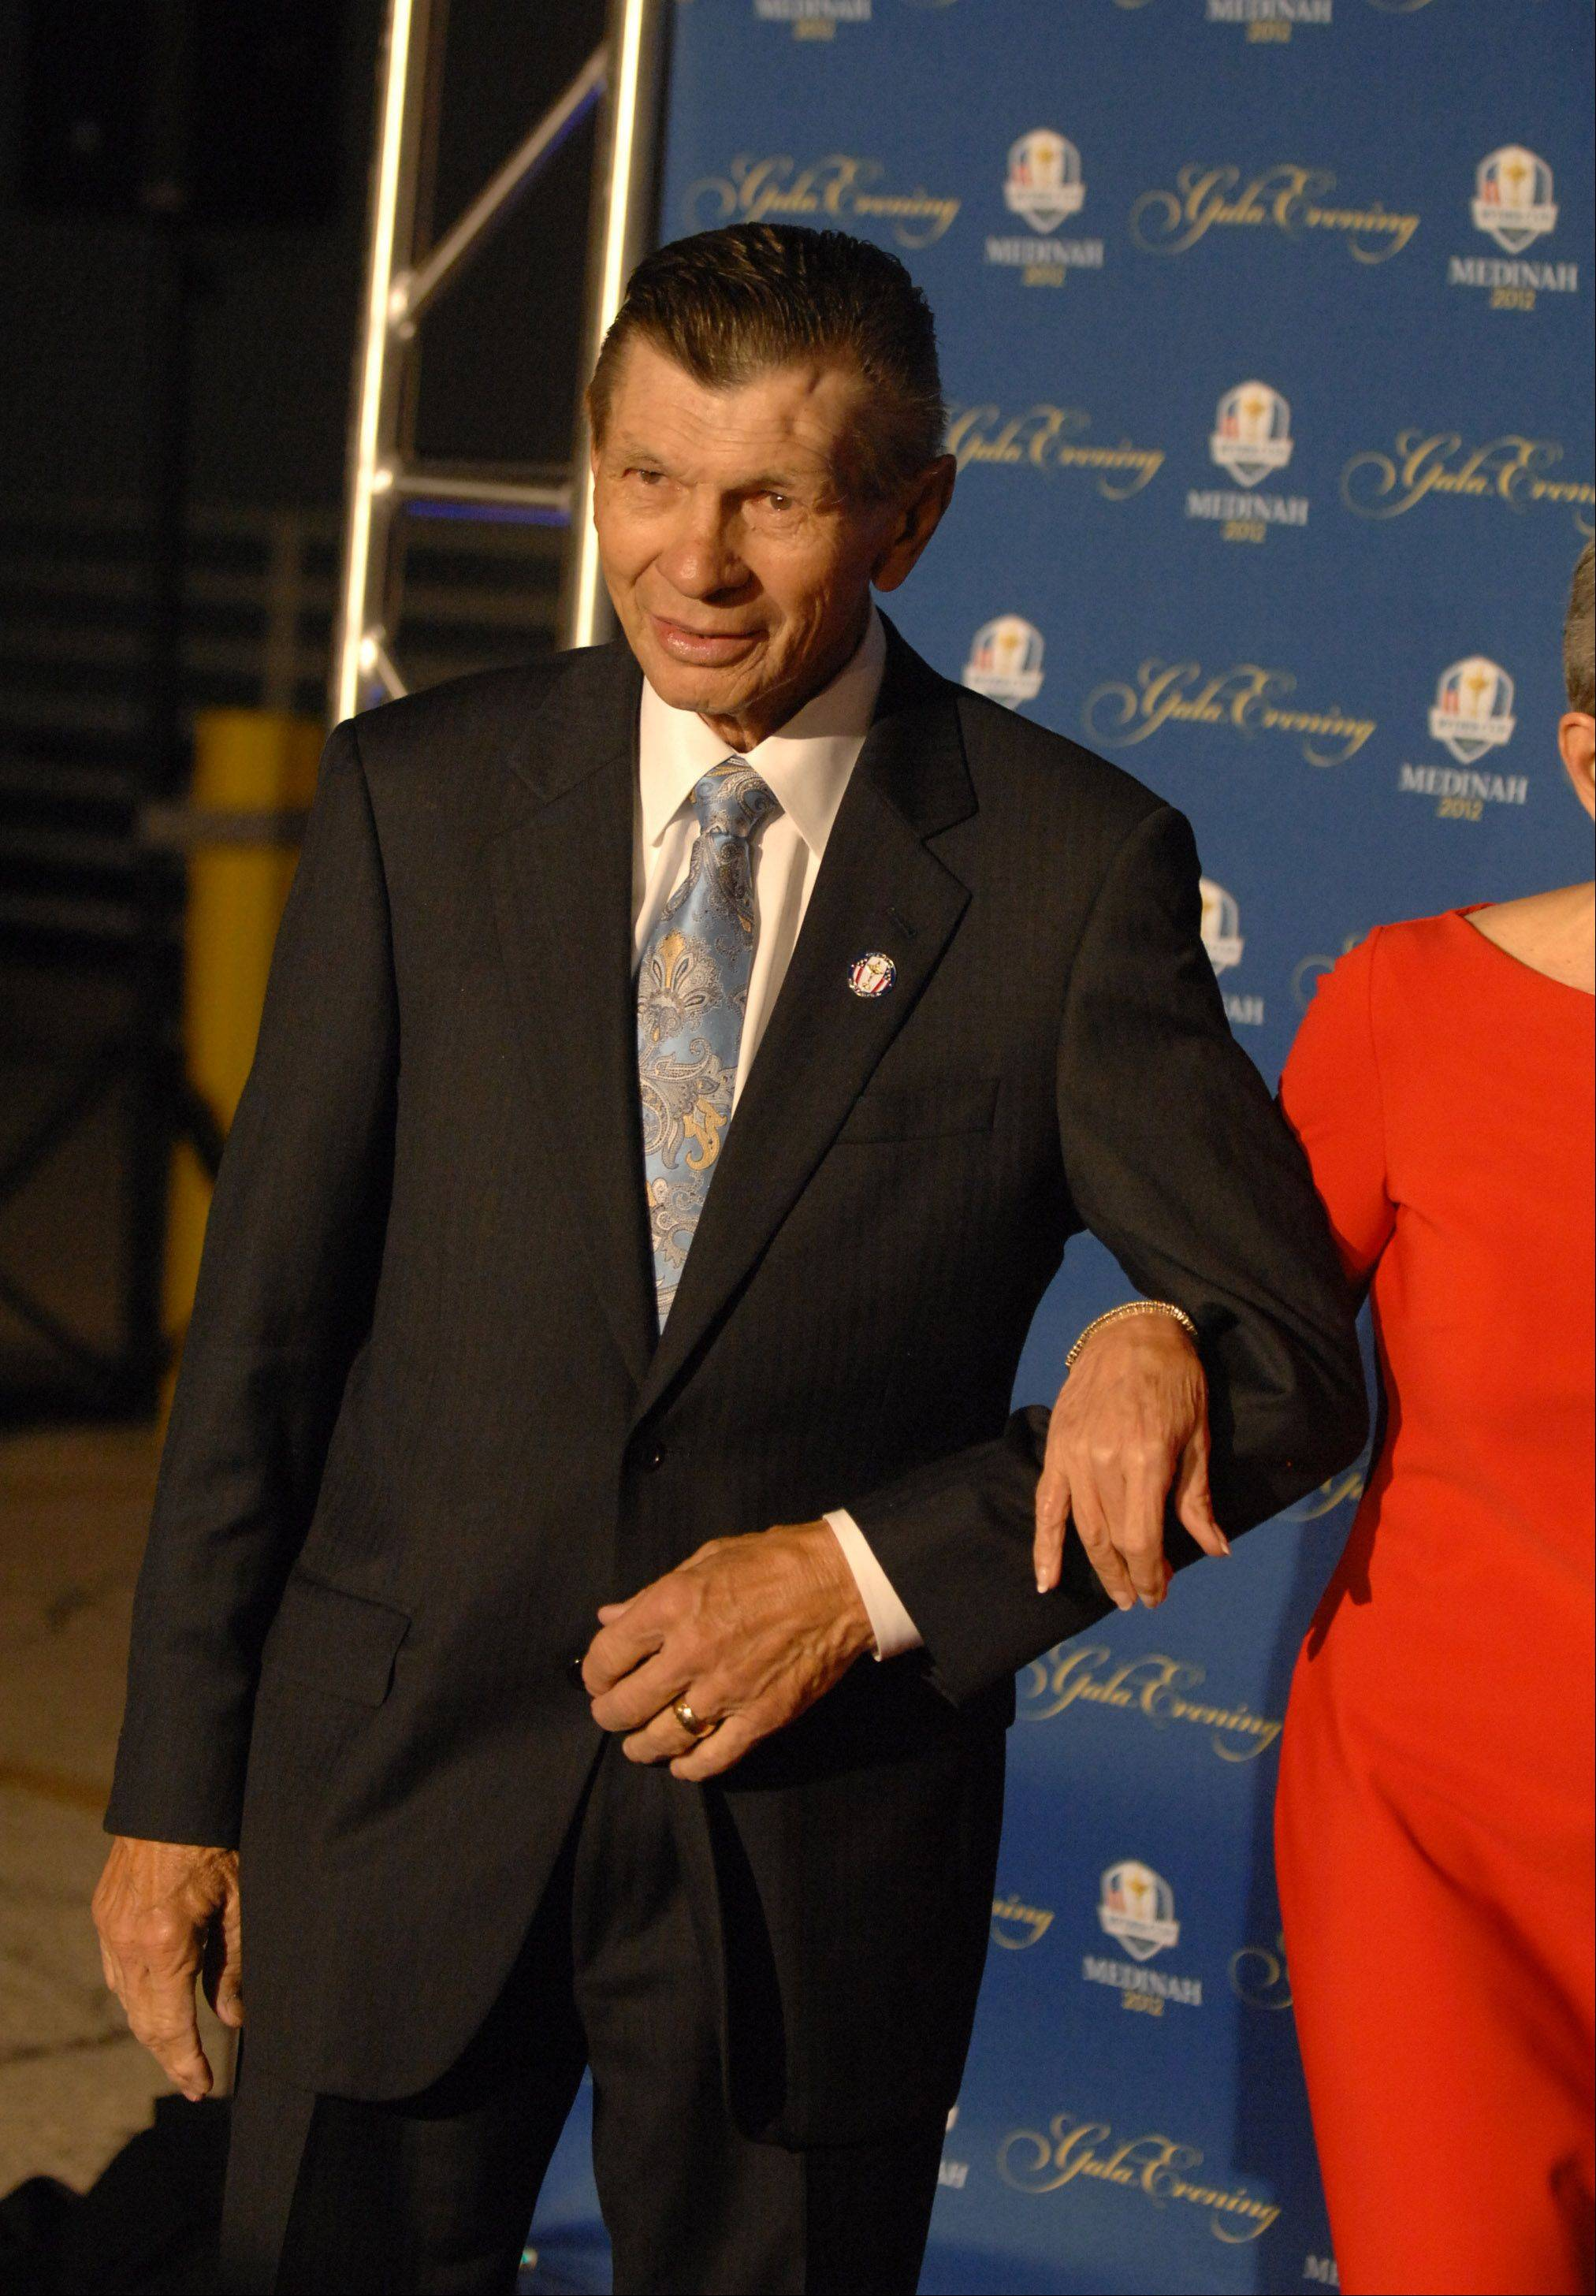 Blackhawks legend Stan Mikita walks the 39th Ryder Cup Gala red carpet at the Akoo Theatre in Rosemont Wednesday.